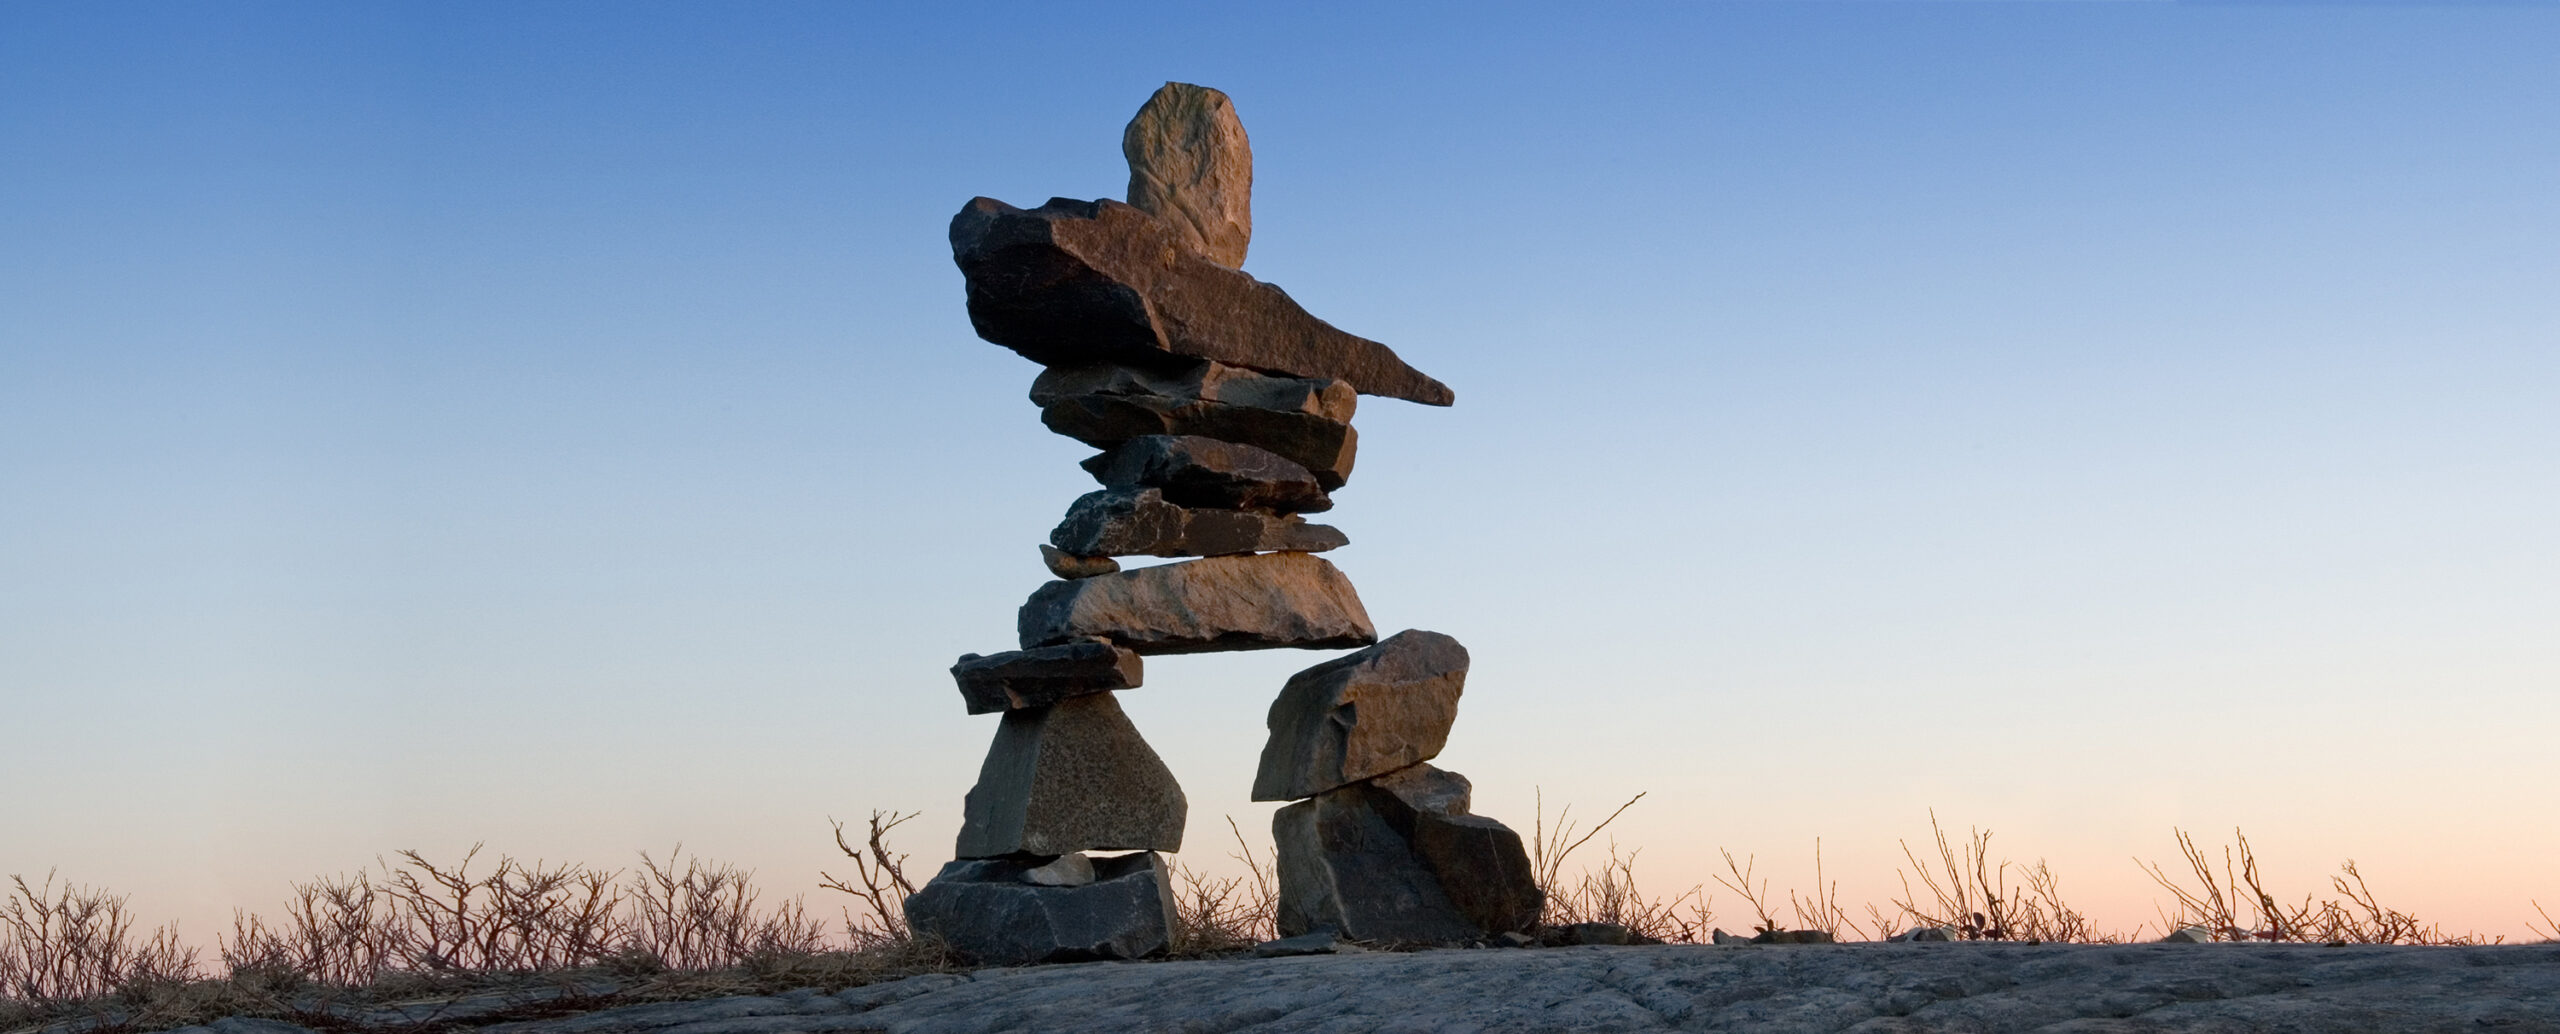 Inuksuk is a manmade stone landmark built by the Inuit people. Found above the Arctic Circle, a region dominated by the tundra biome with few natural landmarks, these structures once served as a compass. The presence of an Inuksuk might indicate a hunting area, a sacred place, or act as a navigator for travellers. In a vast, barren region where much of the landscape looks the same, Inuksuk provided evidence that travellers weren't alone, that someone had previously stood where they stood. Today Inuksuk symbolizes guidance, orientation and shared knowledge for the common good.